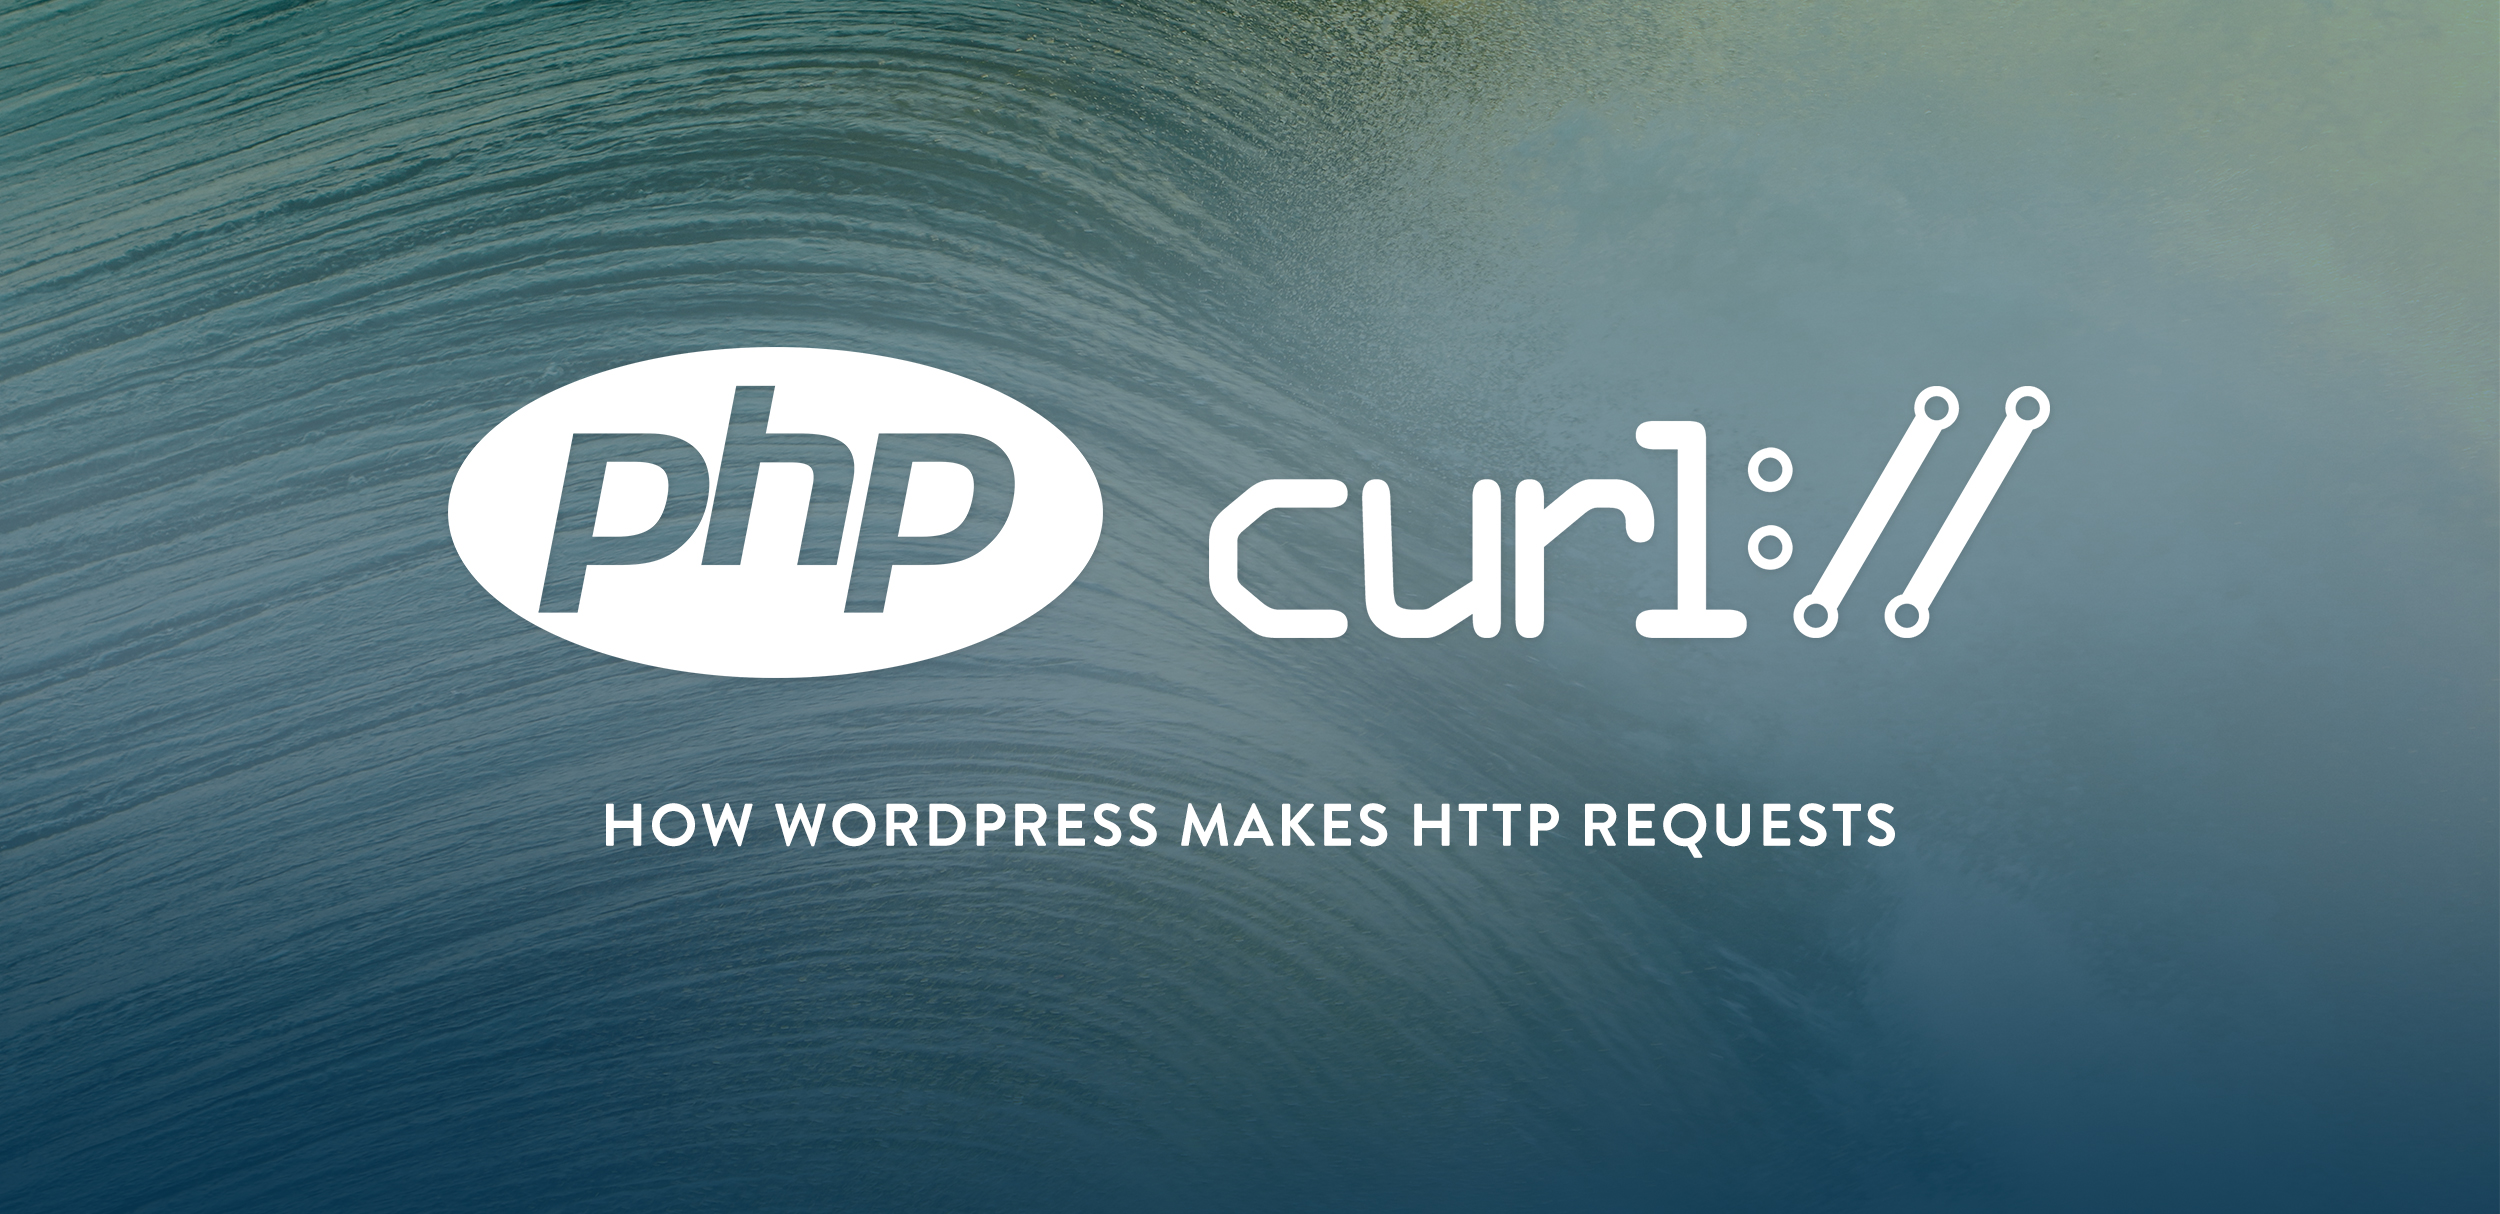 PHP and cURL: How WordPress makes HTTP requests